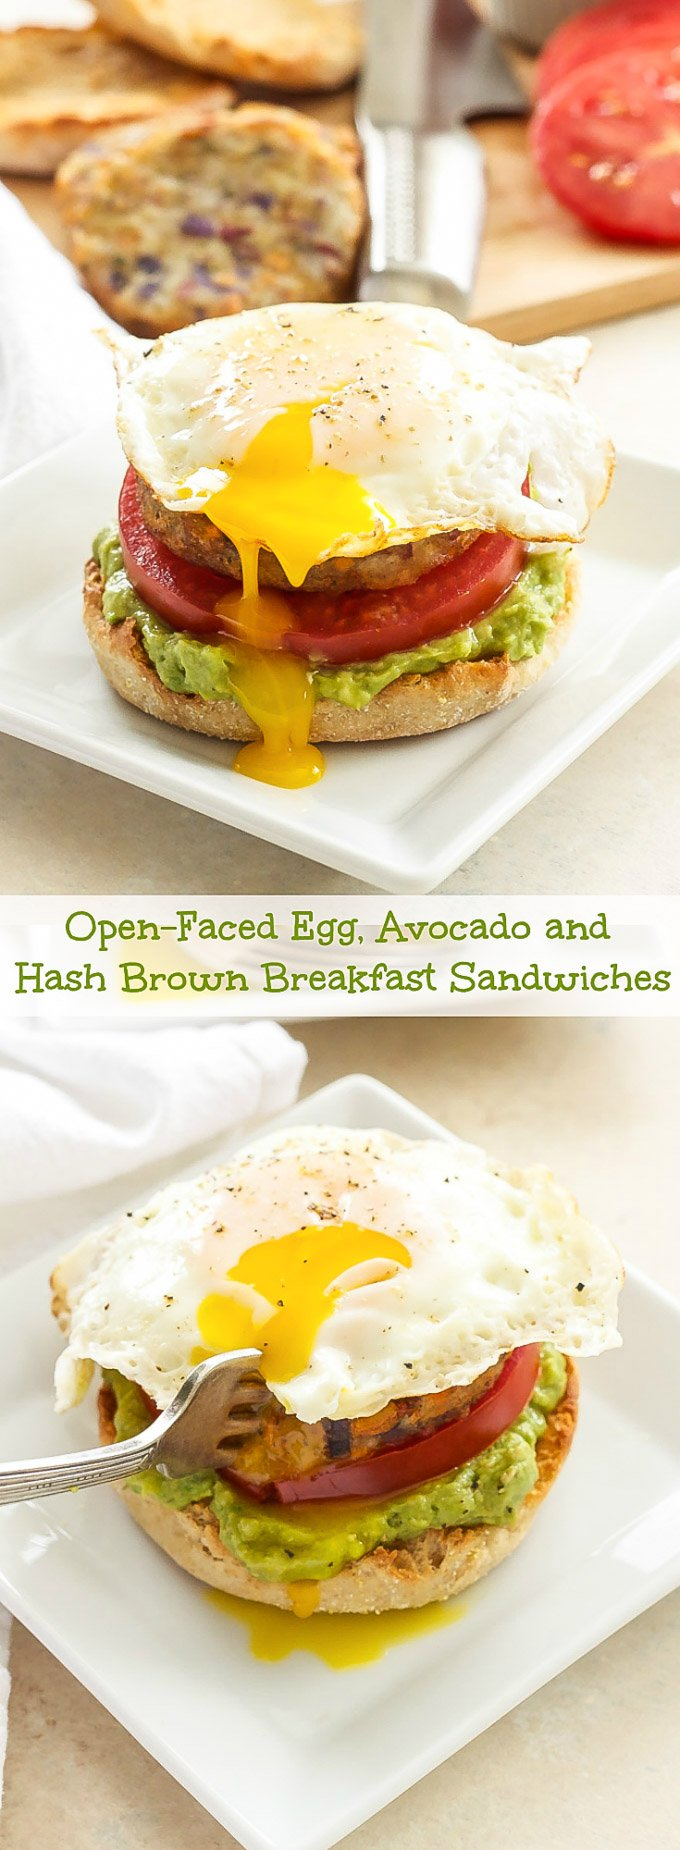 Open-Faced Egg, Avocado and Hash Brown Breakfast Sandwiches | Start your morning with a balanced breakfast full of protein, healthy fats and carbs!